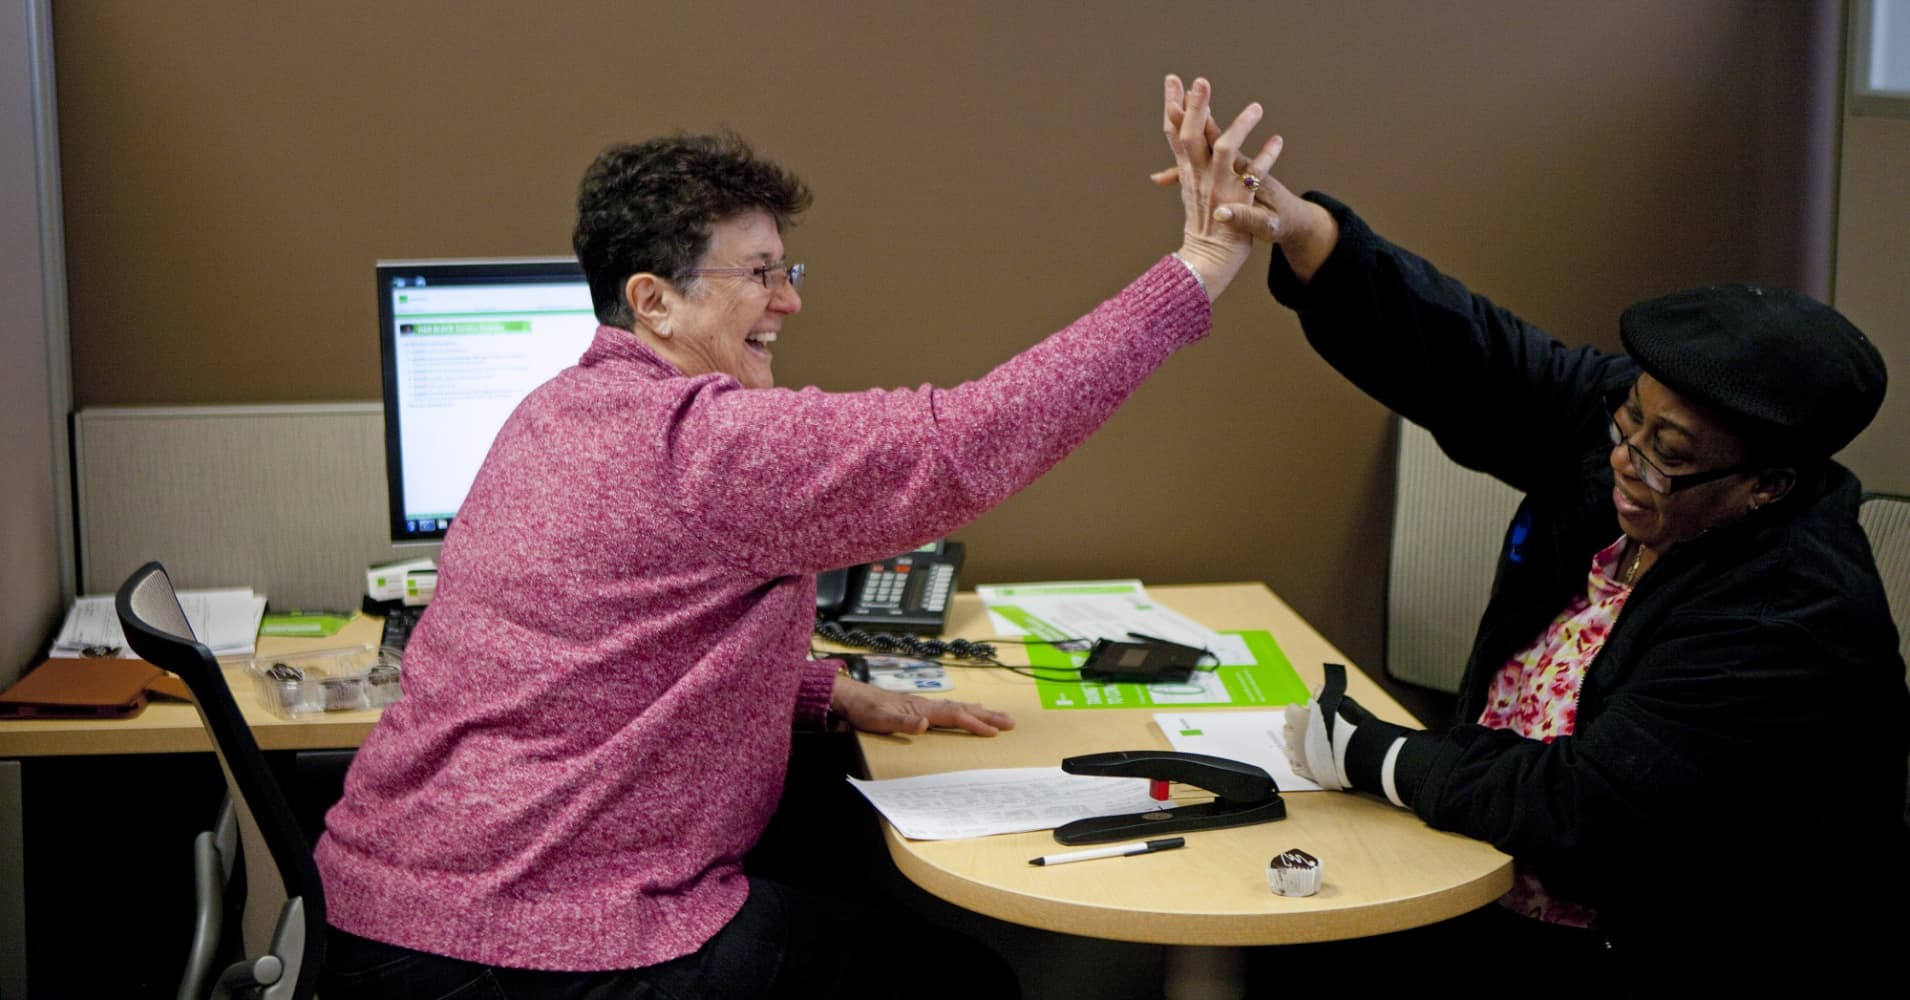 H&R Block employee high fives a customer.